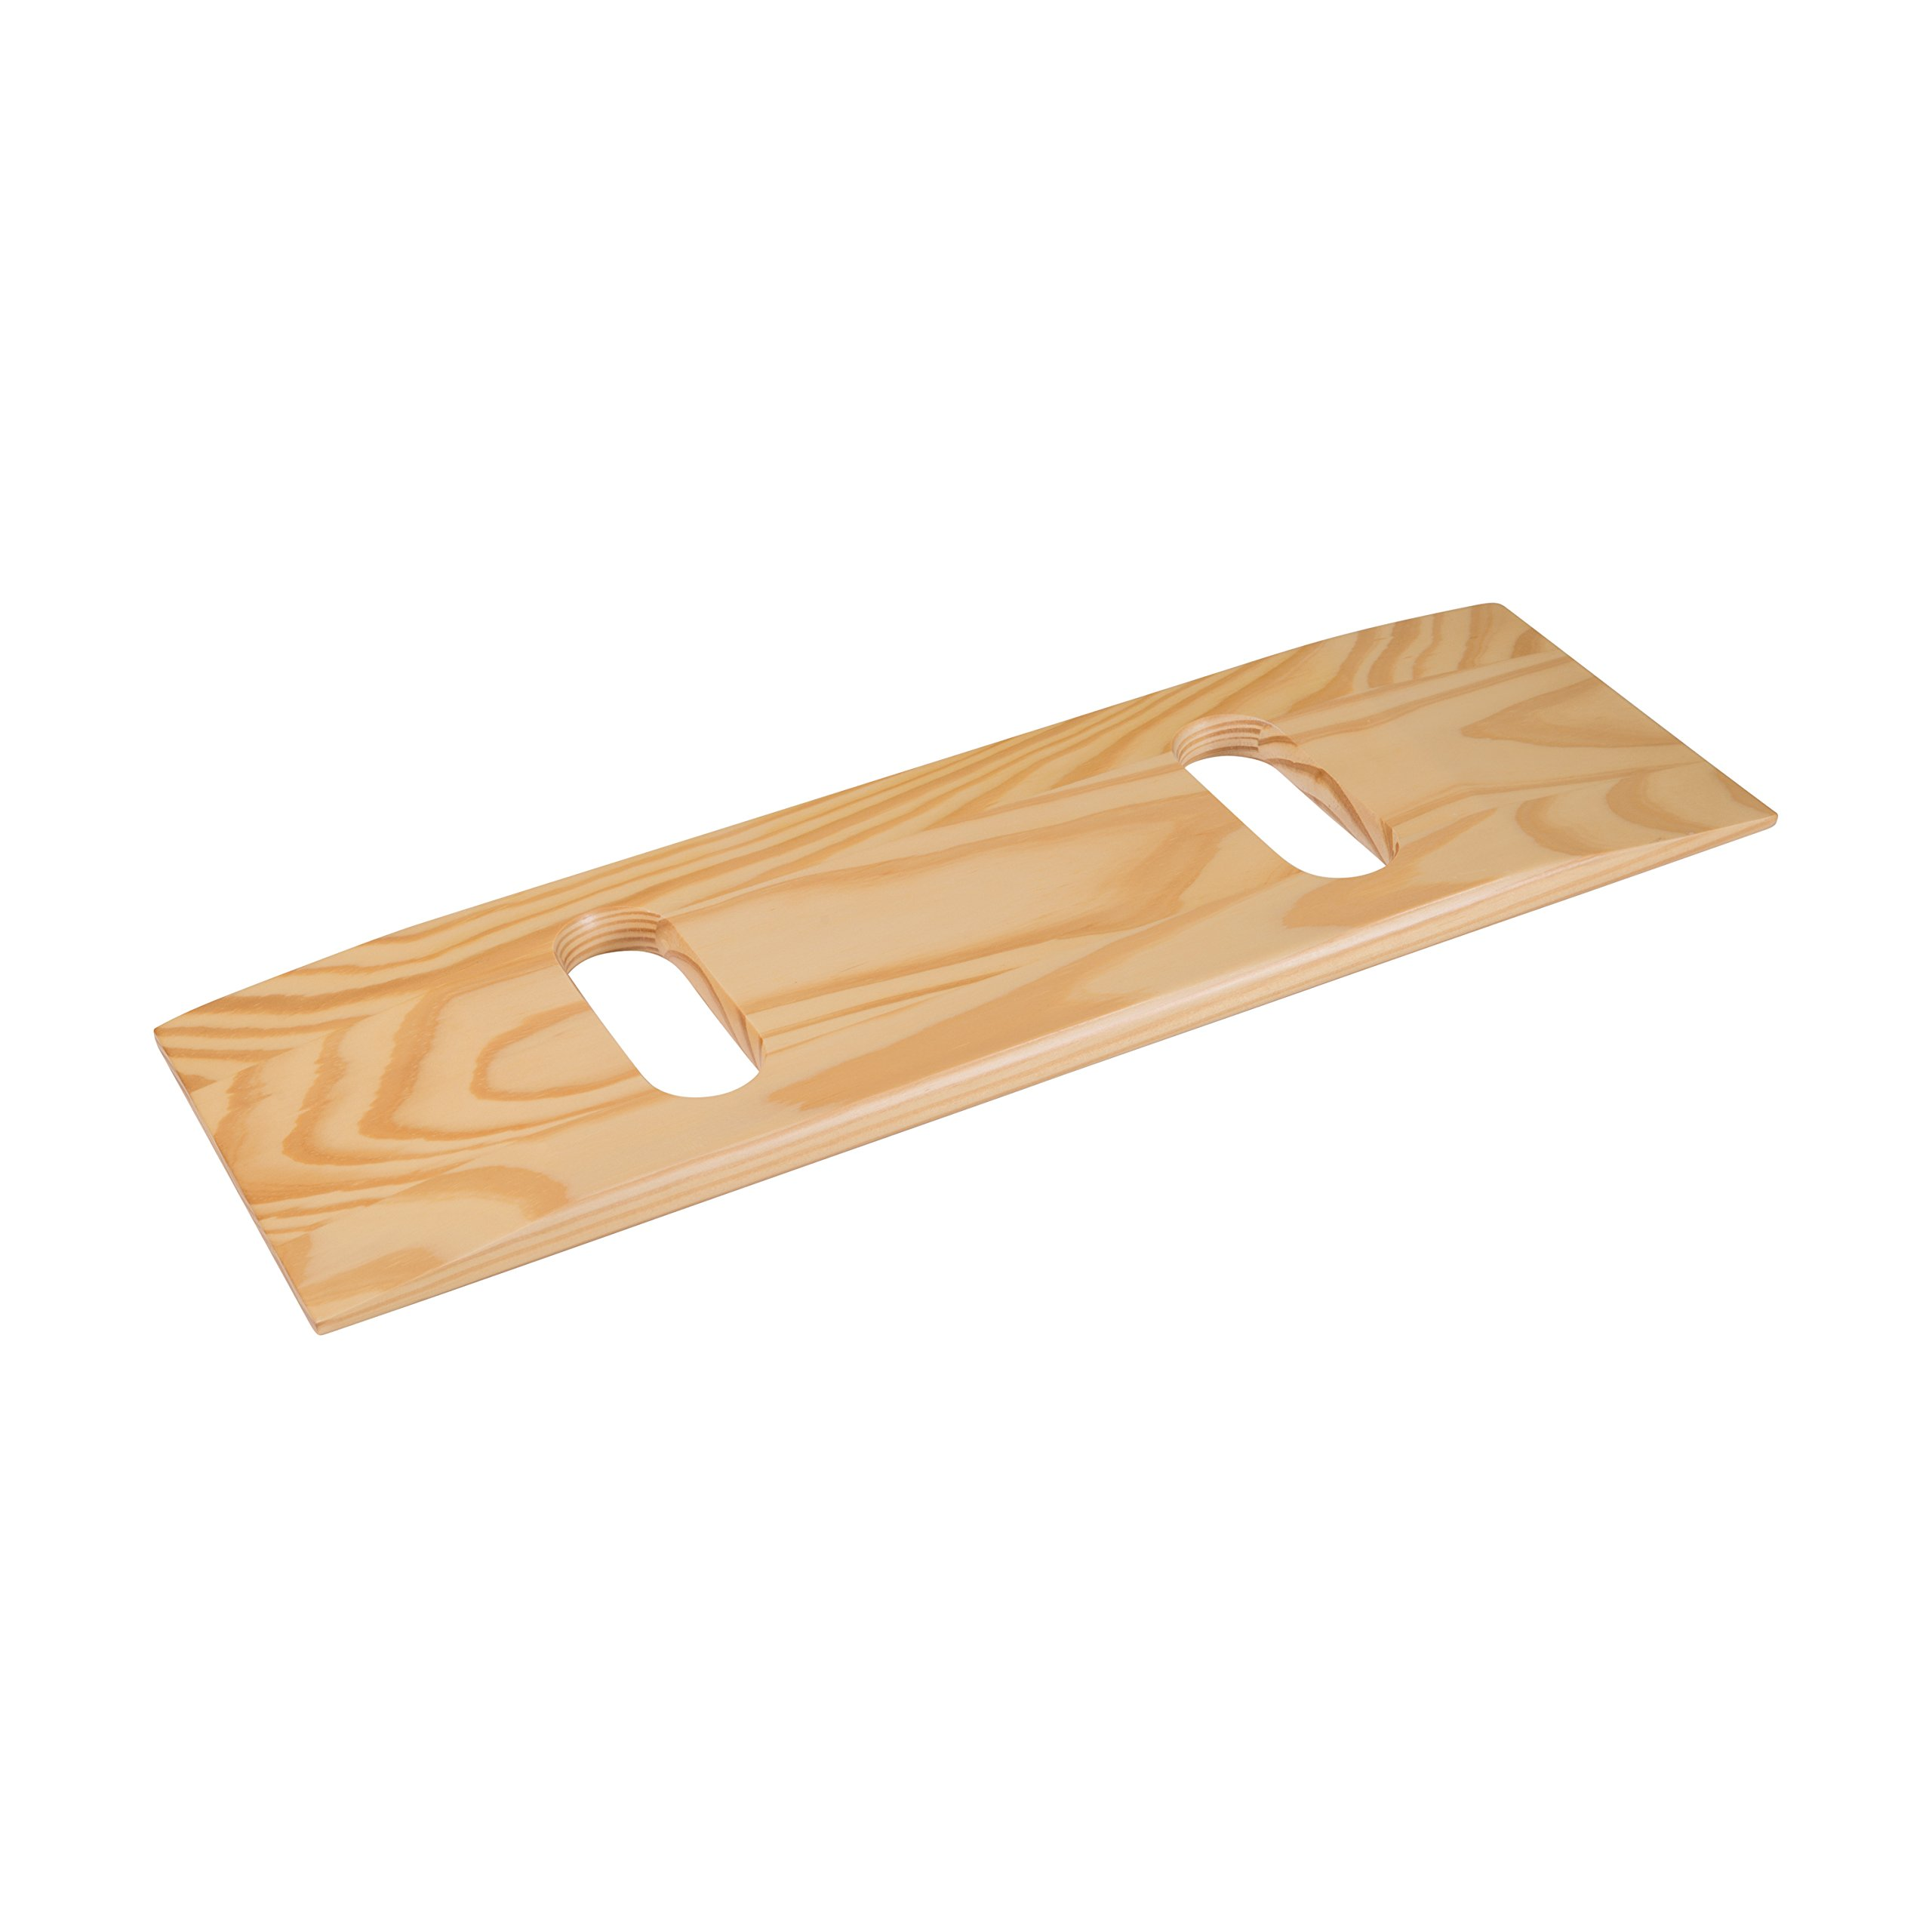 DMI Deluxe Wood Transfer Board Patient Slide Board, 8 x 24 with Two Cutouts, Compact Size, Supports 440lb, Southern Yellow Pine